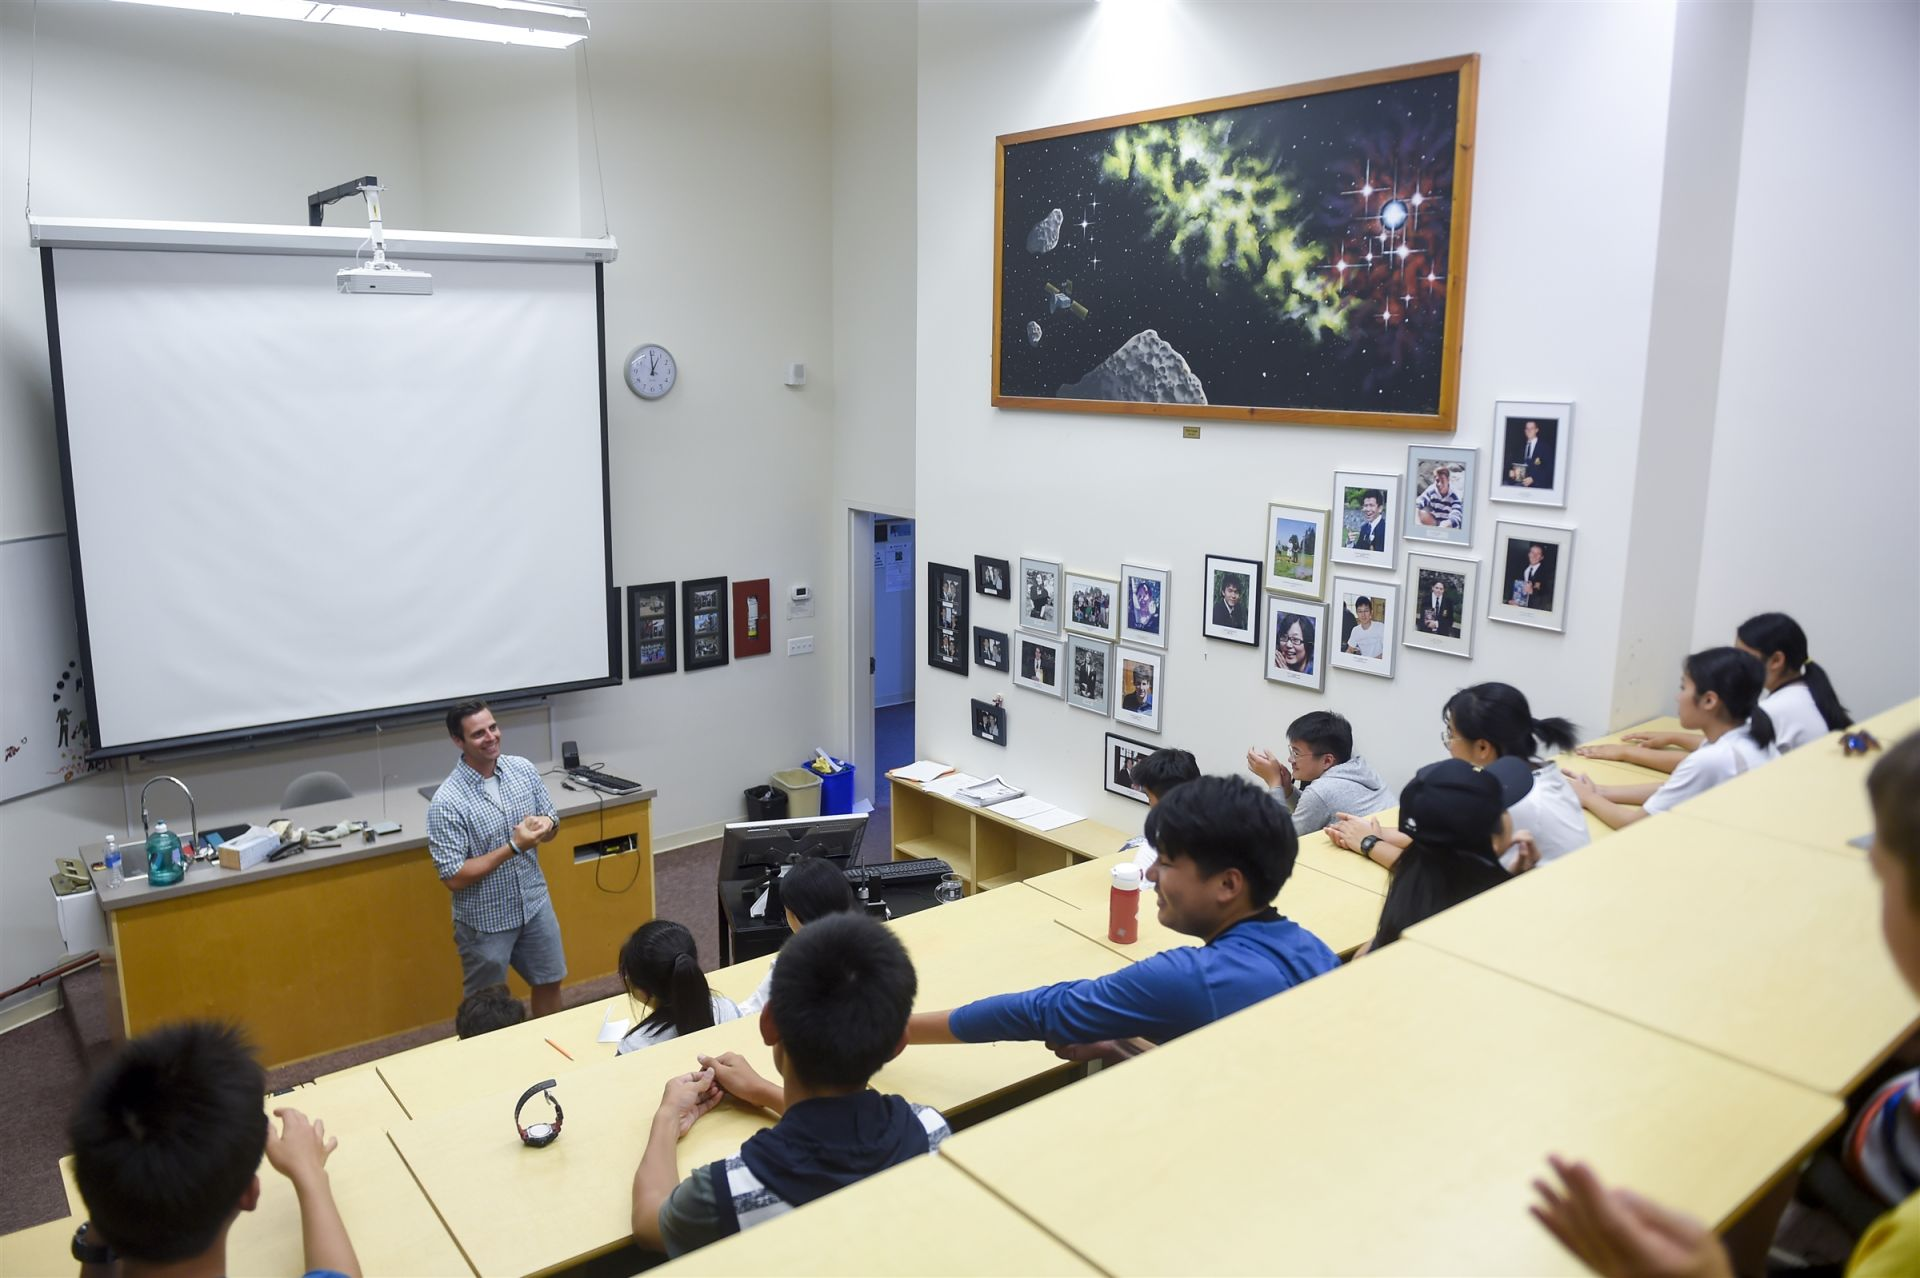 University-style classrooms promote learning and interaction.